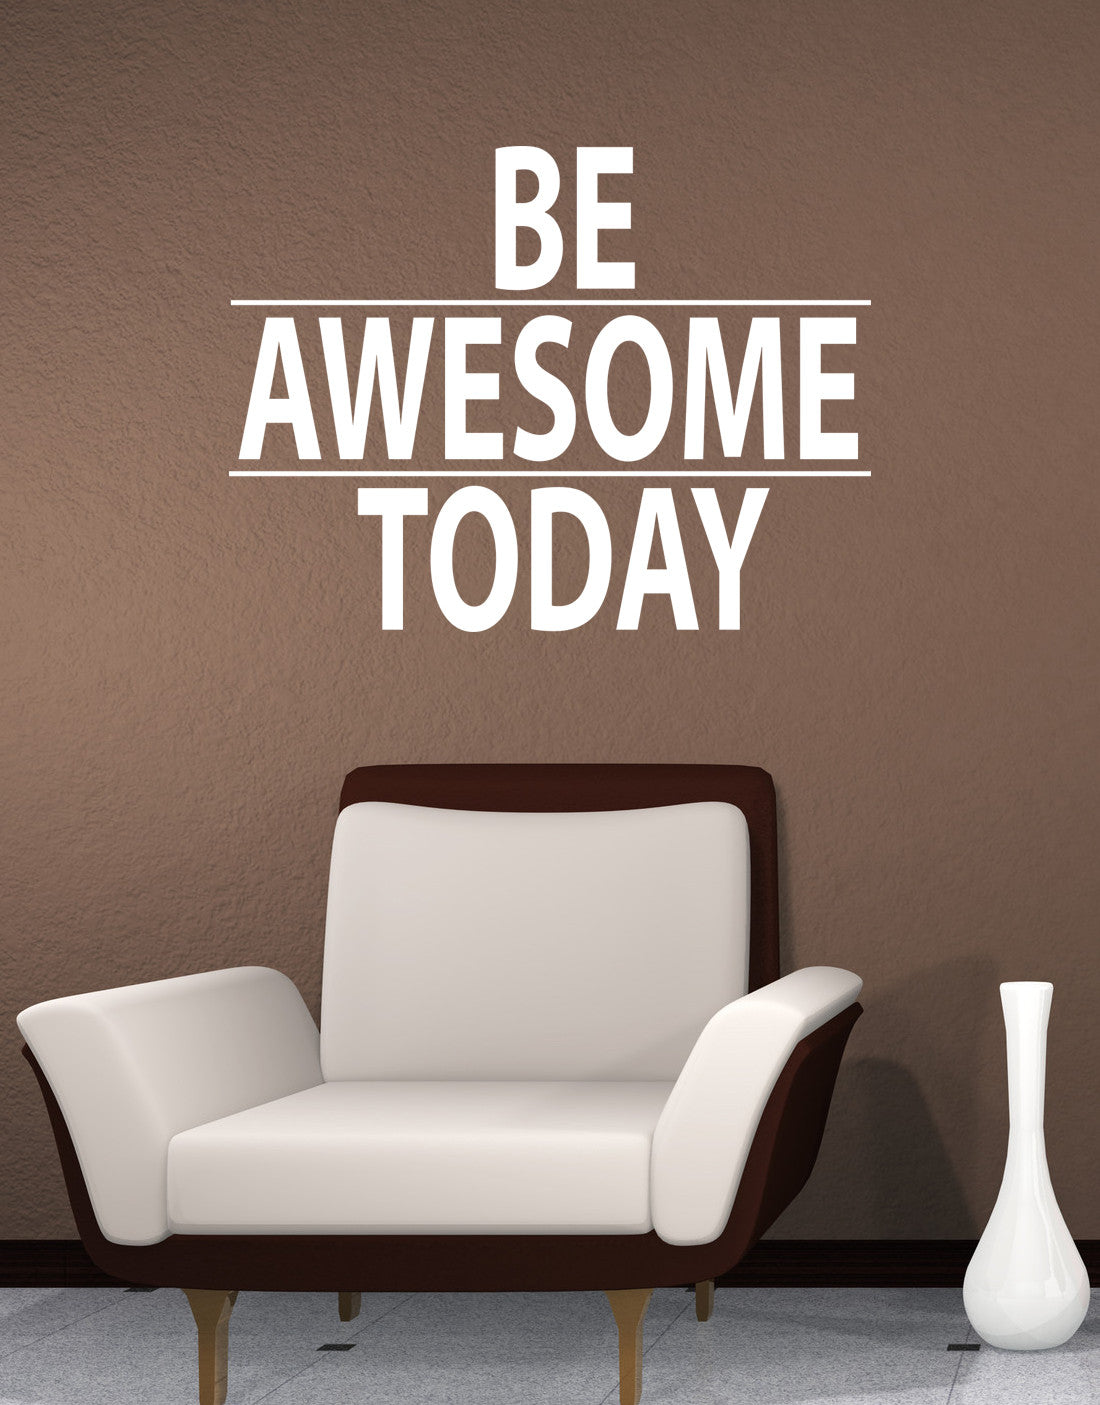 Be awesome today motivational quote wall decal sticker 6013 for Awesome wall decal directions